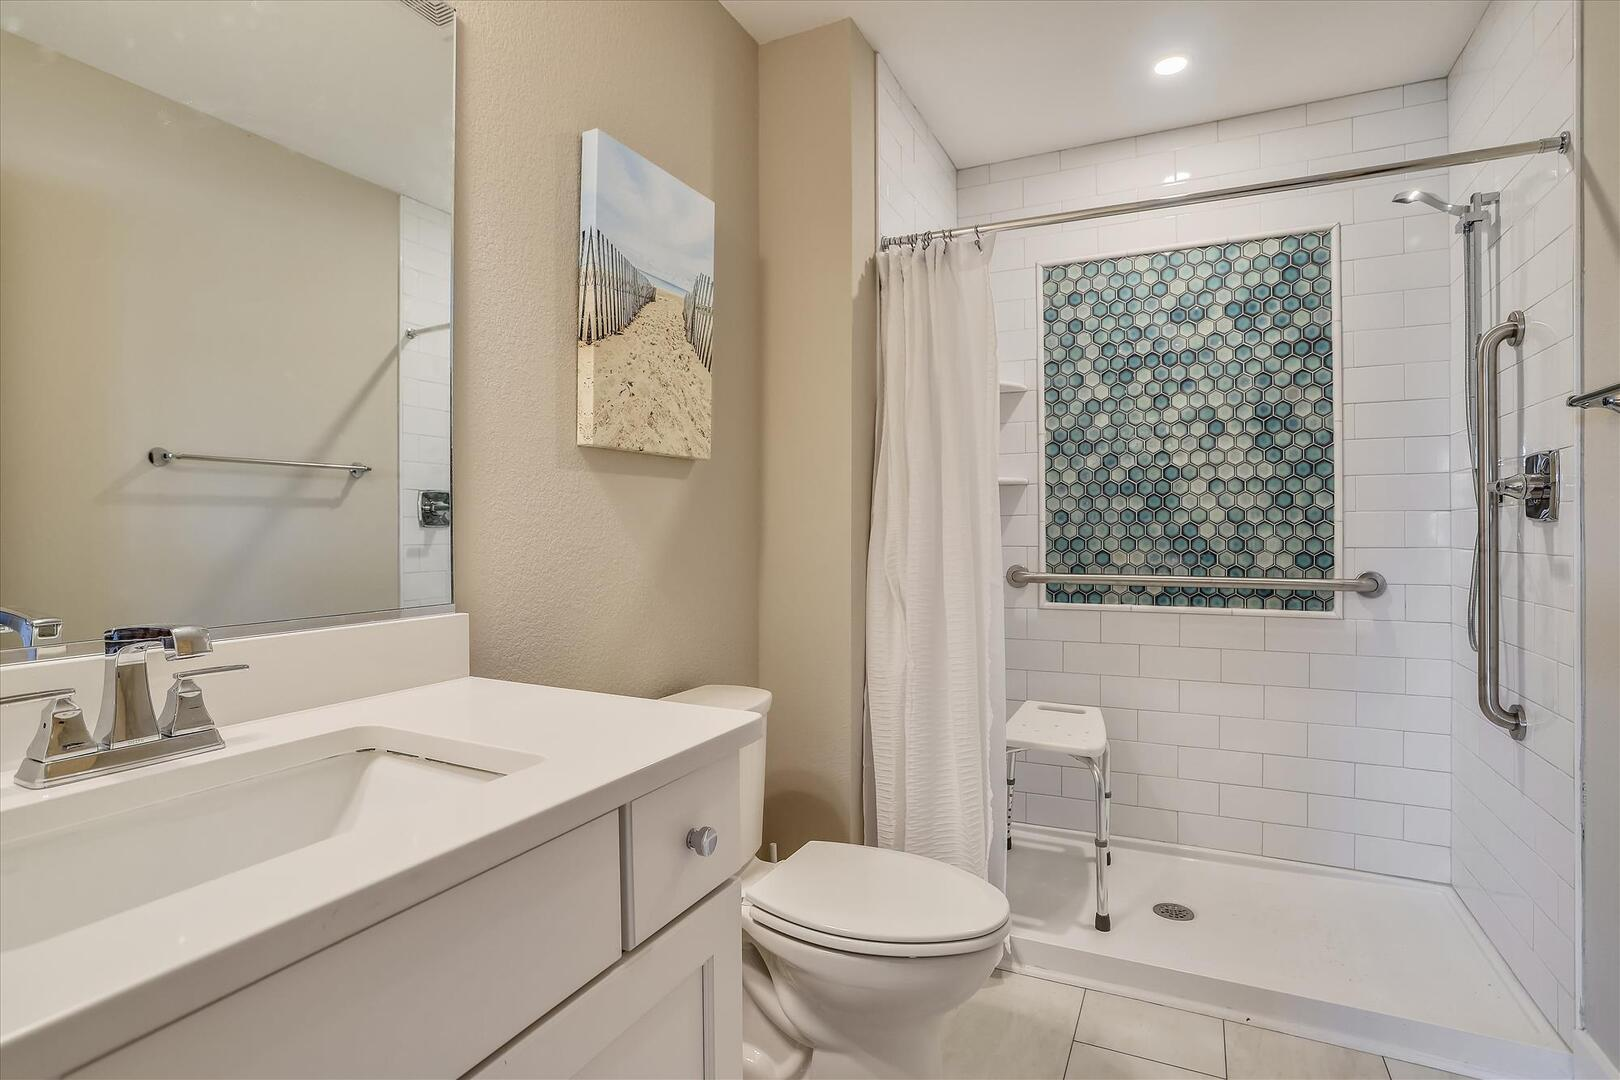 Middle Level,Primary Bath,